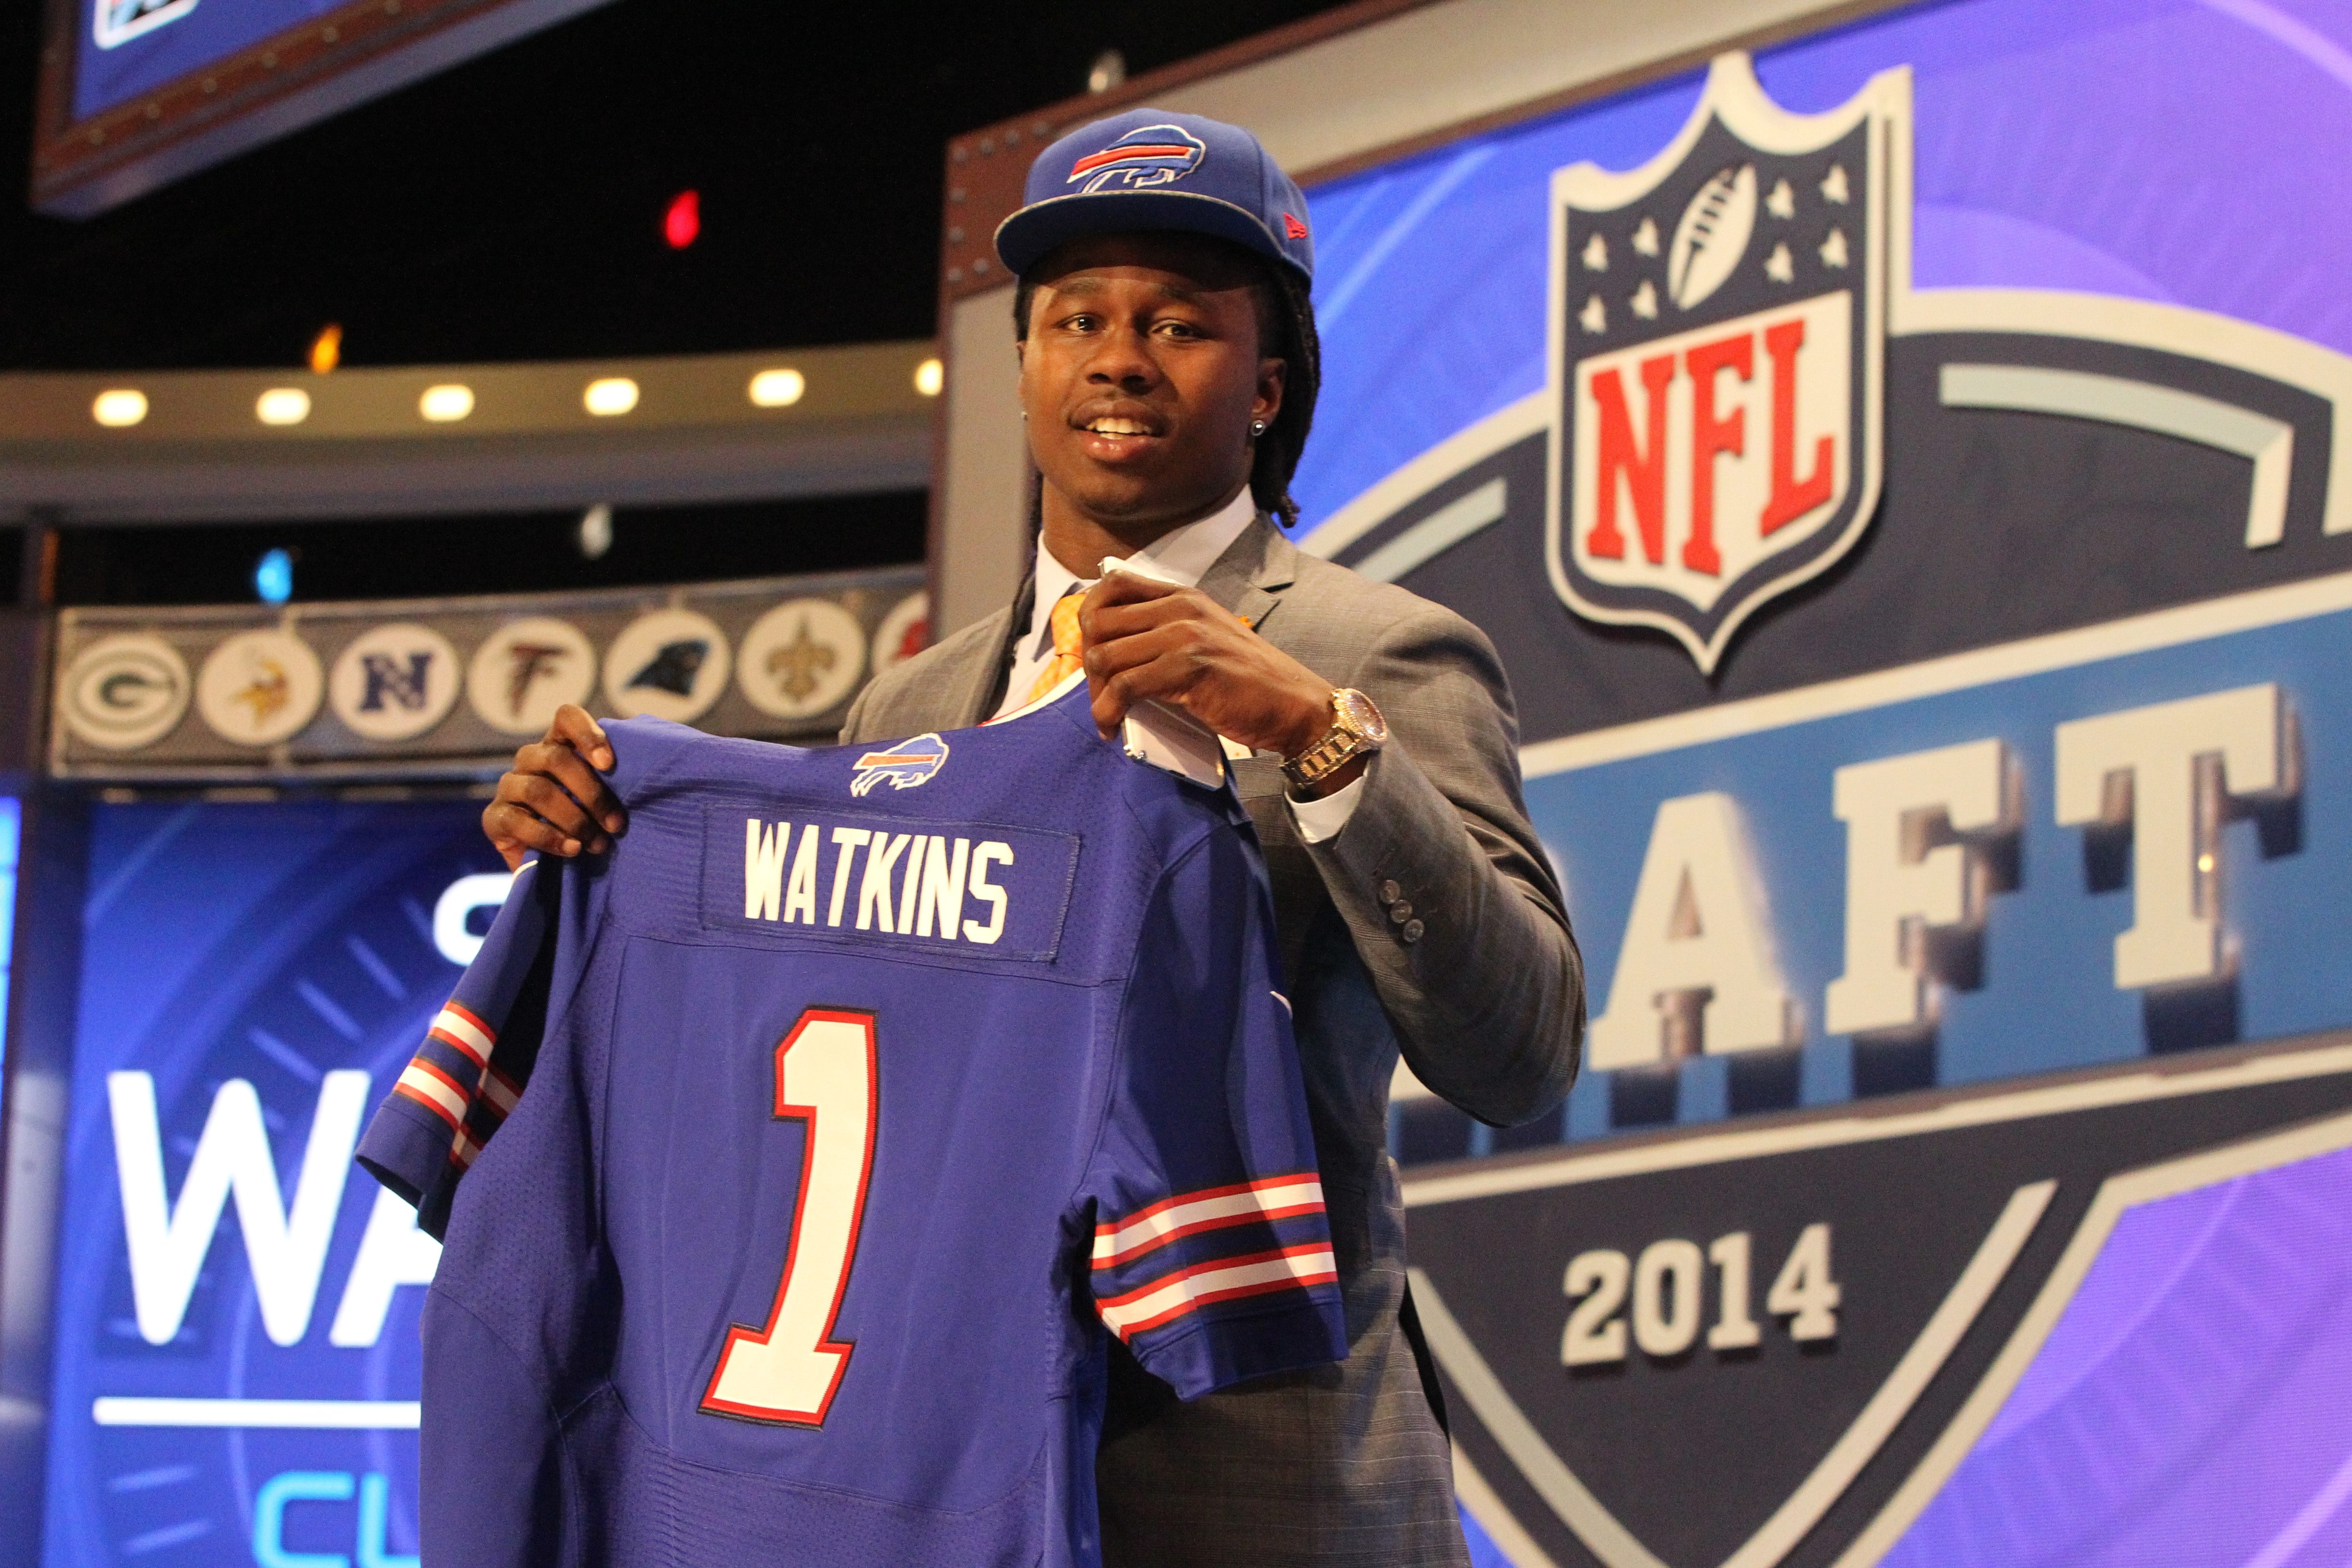 The Buffalo Bills picked Clemson's Sammy Watkins with their first pick at the 2014 NFL draft Thursday night at Radio City Music Hall in New York City.